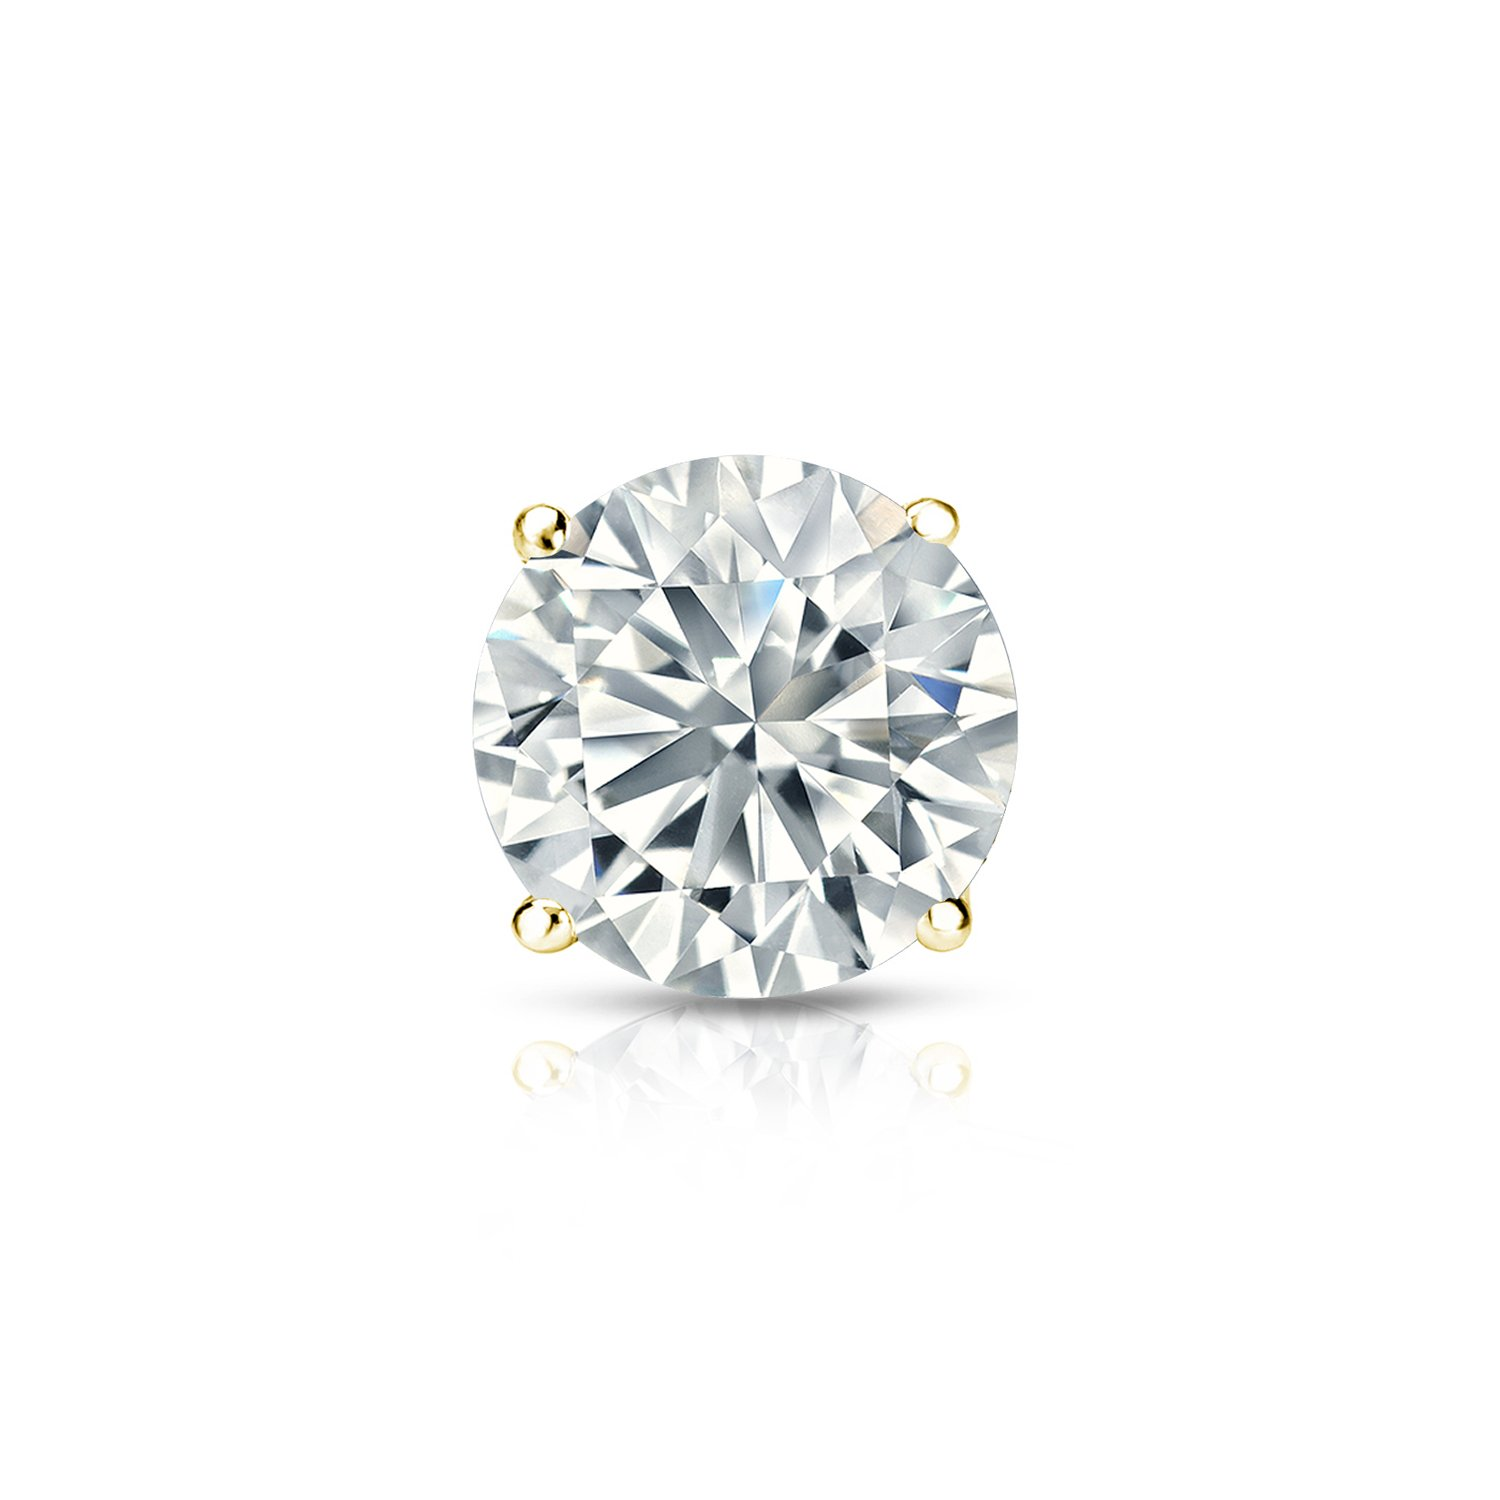 Push-Back 1//8-1 ct, O. White, I2-I3 18k Yellow Gold 4-Prong Basket Round Diamond SINGLE STUD Earring